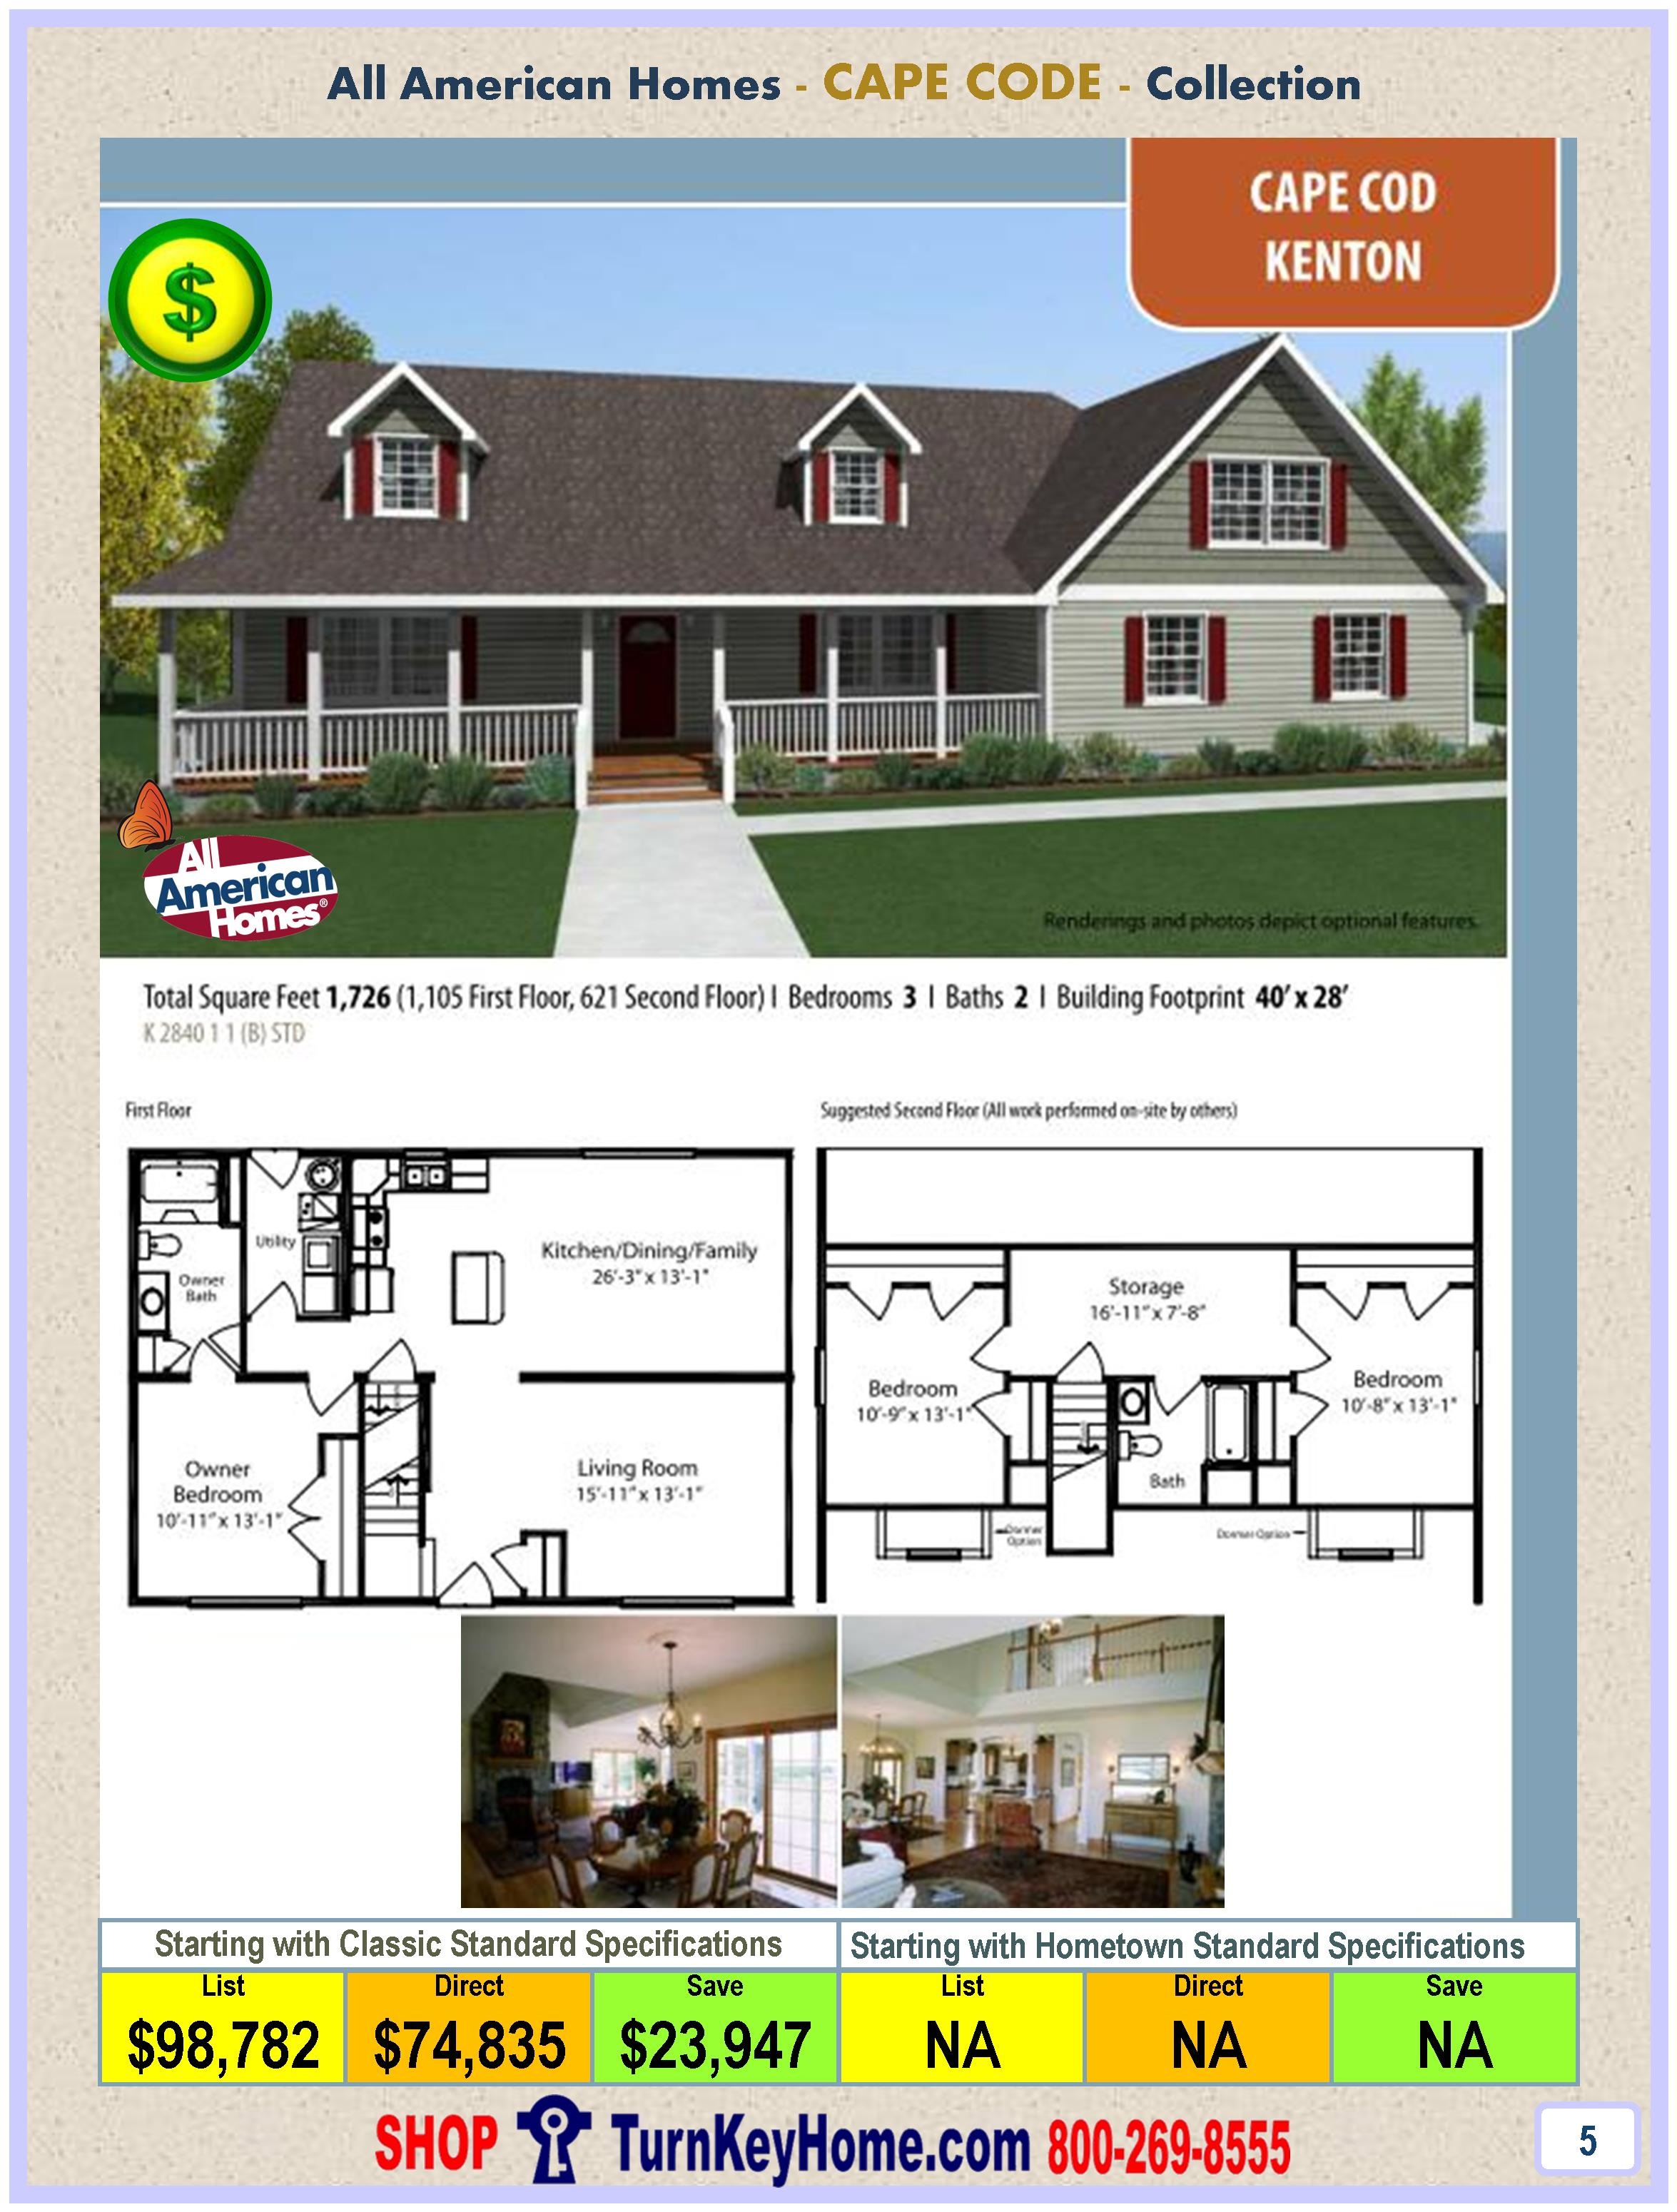 All American Homes kenton all american cape cod modular home cape cod collection plan